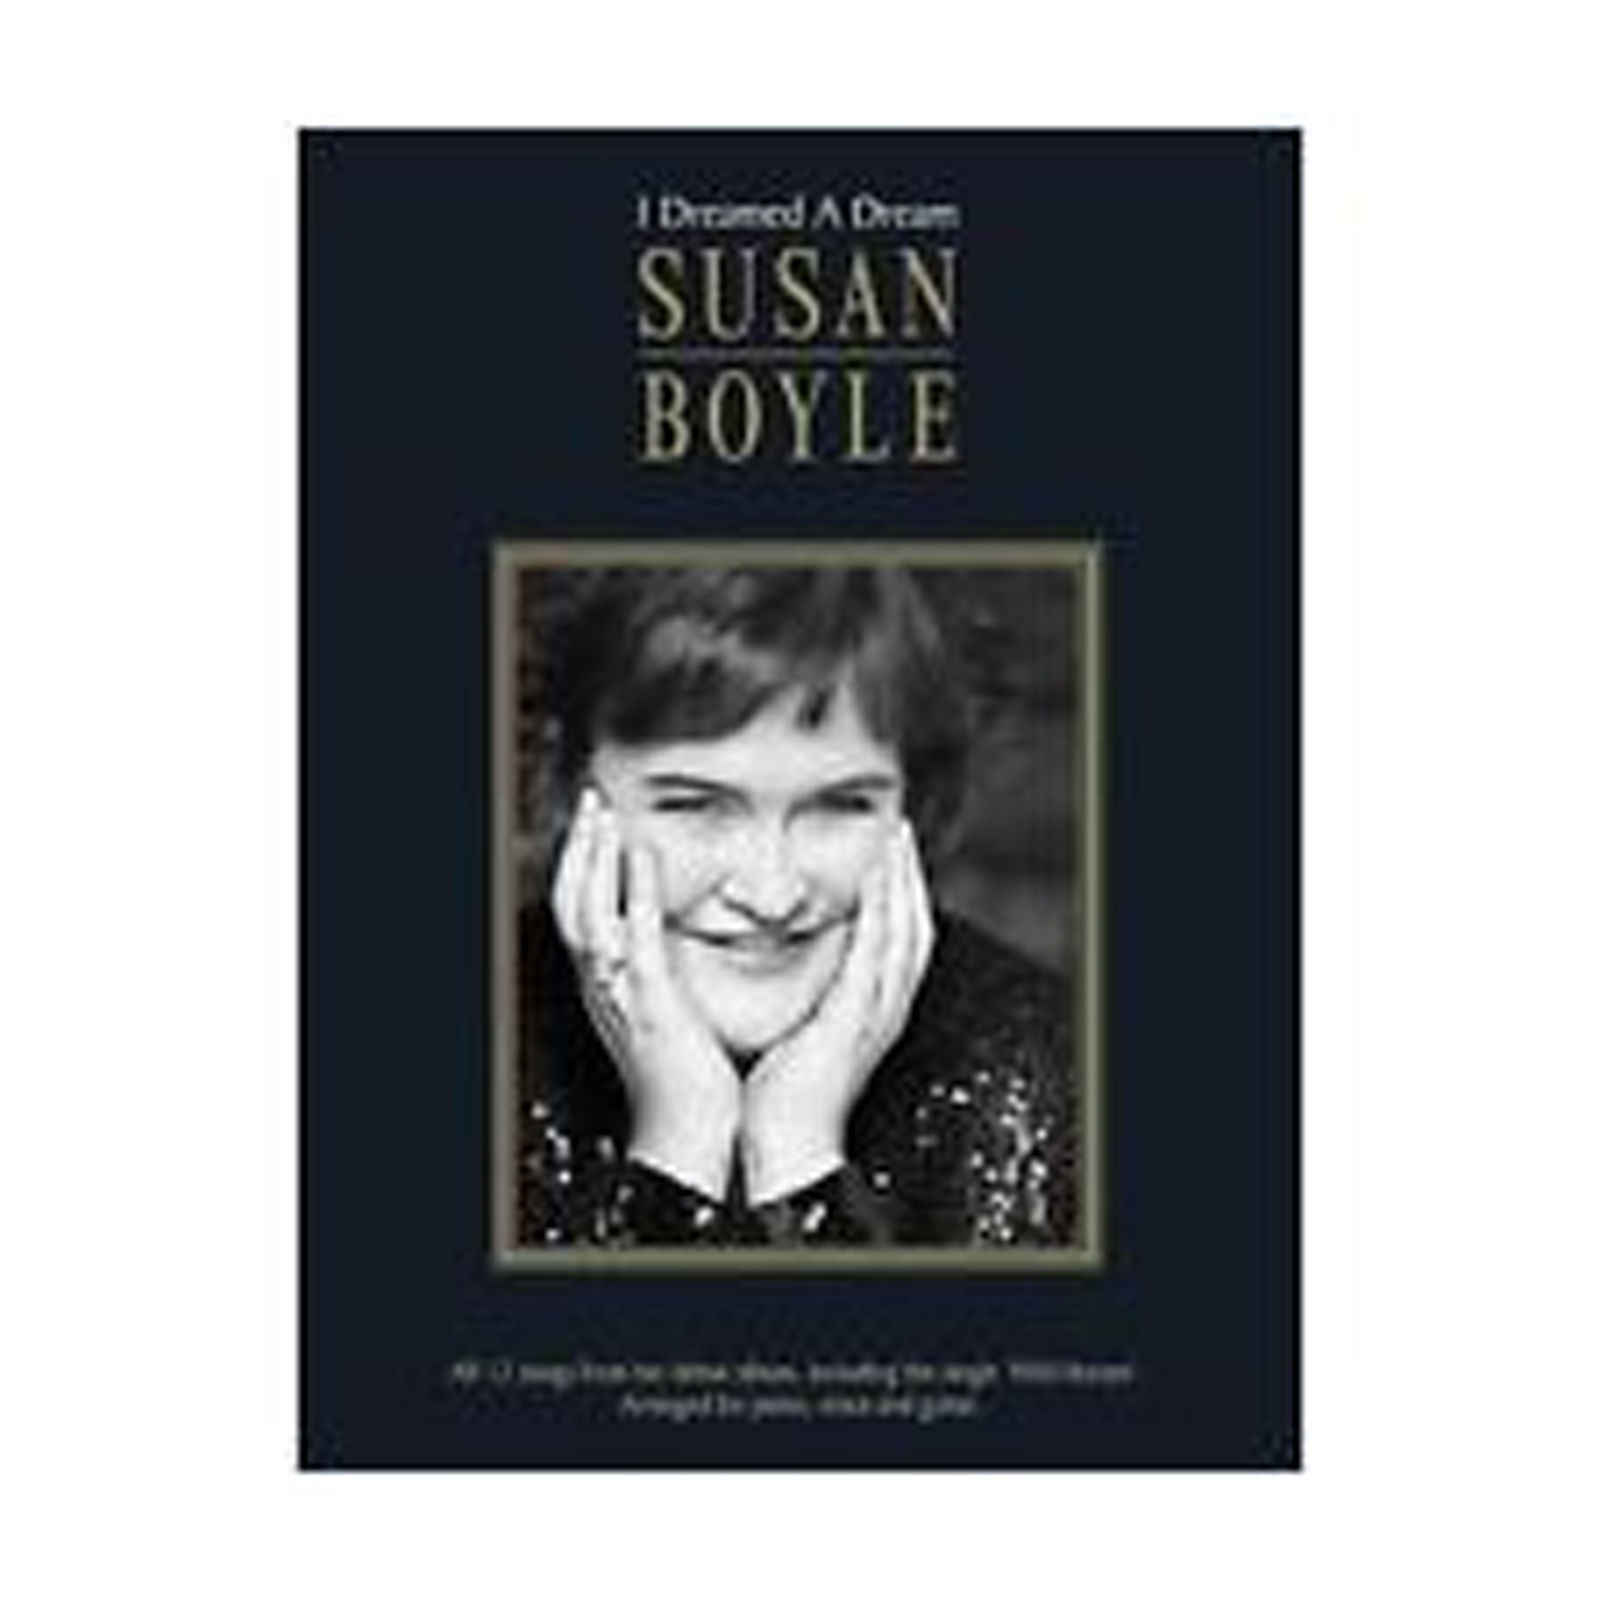 Susan Boyle I Dreamed A Dream Sheet Music Songbook Piano Voice Guitar B41 S72